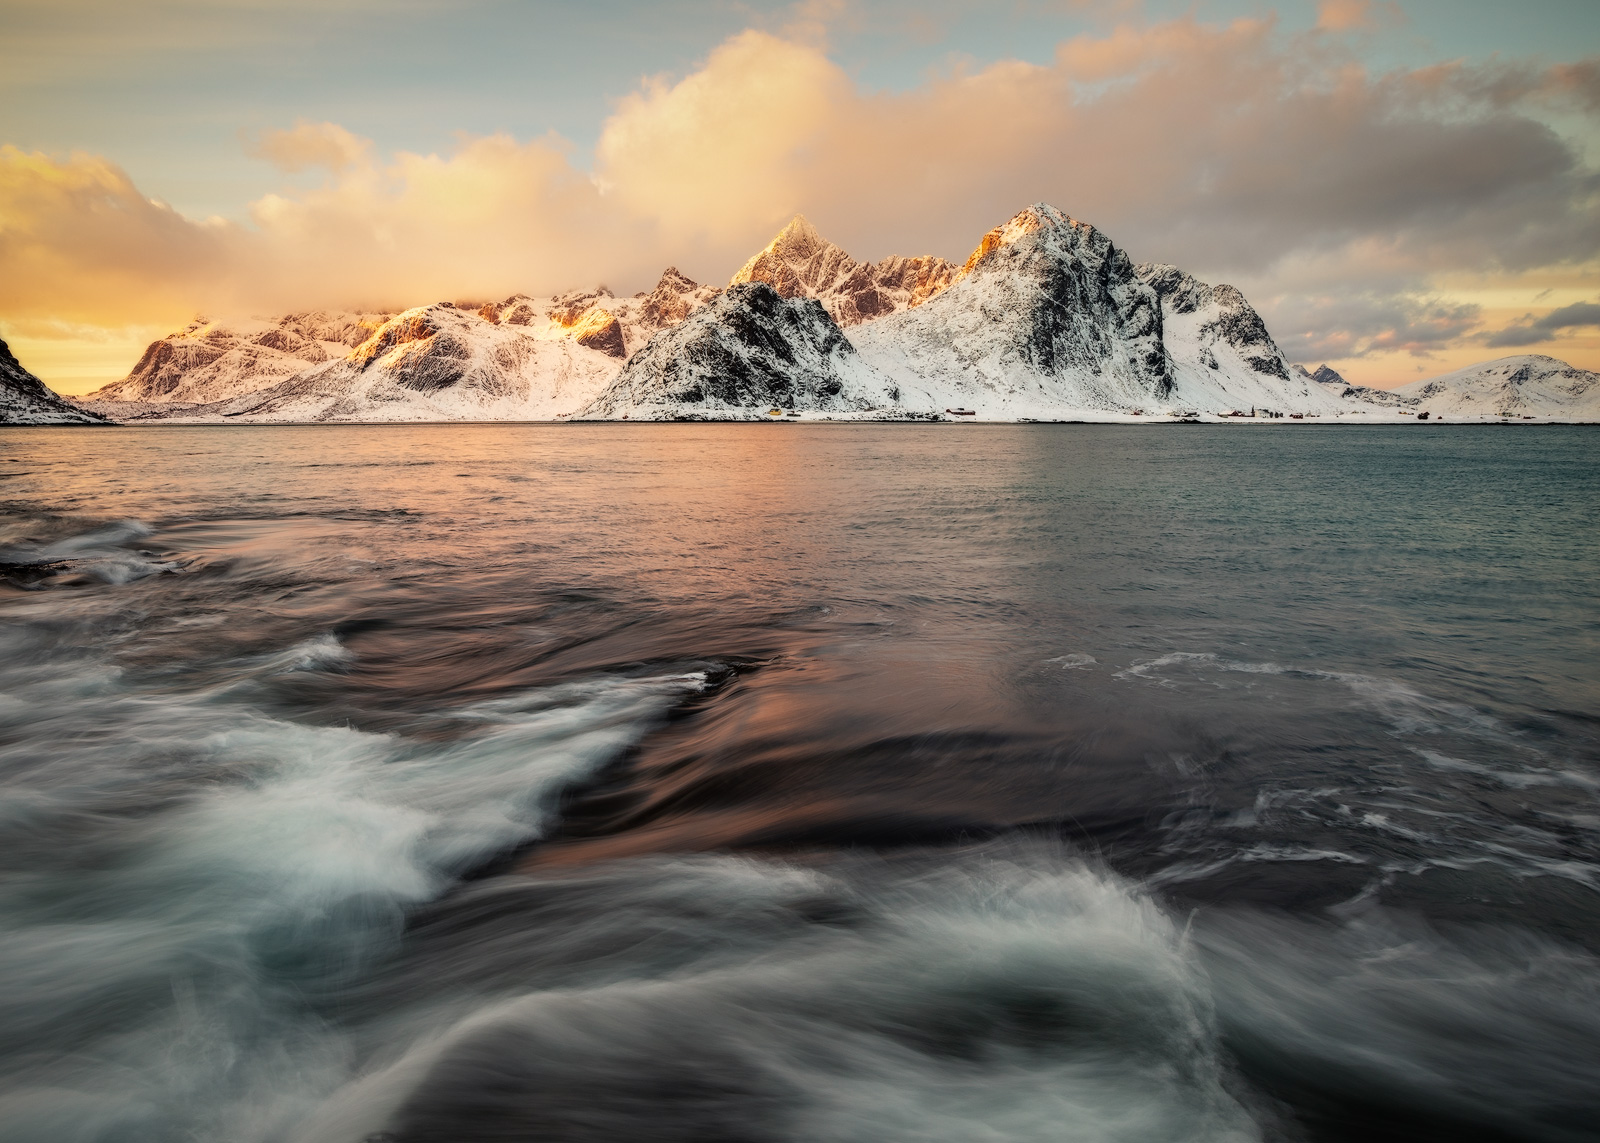 Waves moving across the shore as a brilliant sunrise lights up the distant mountain.